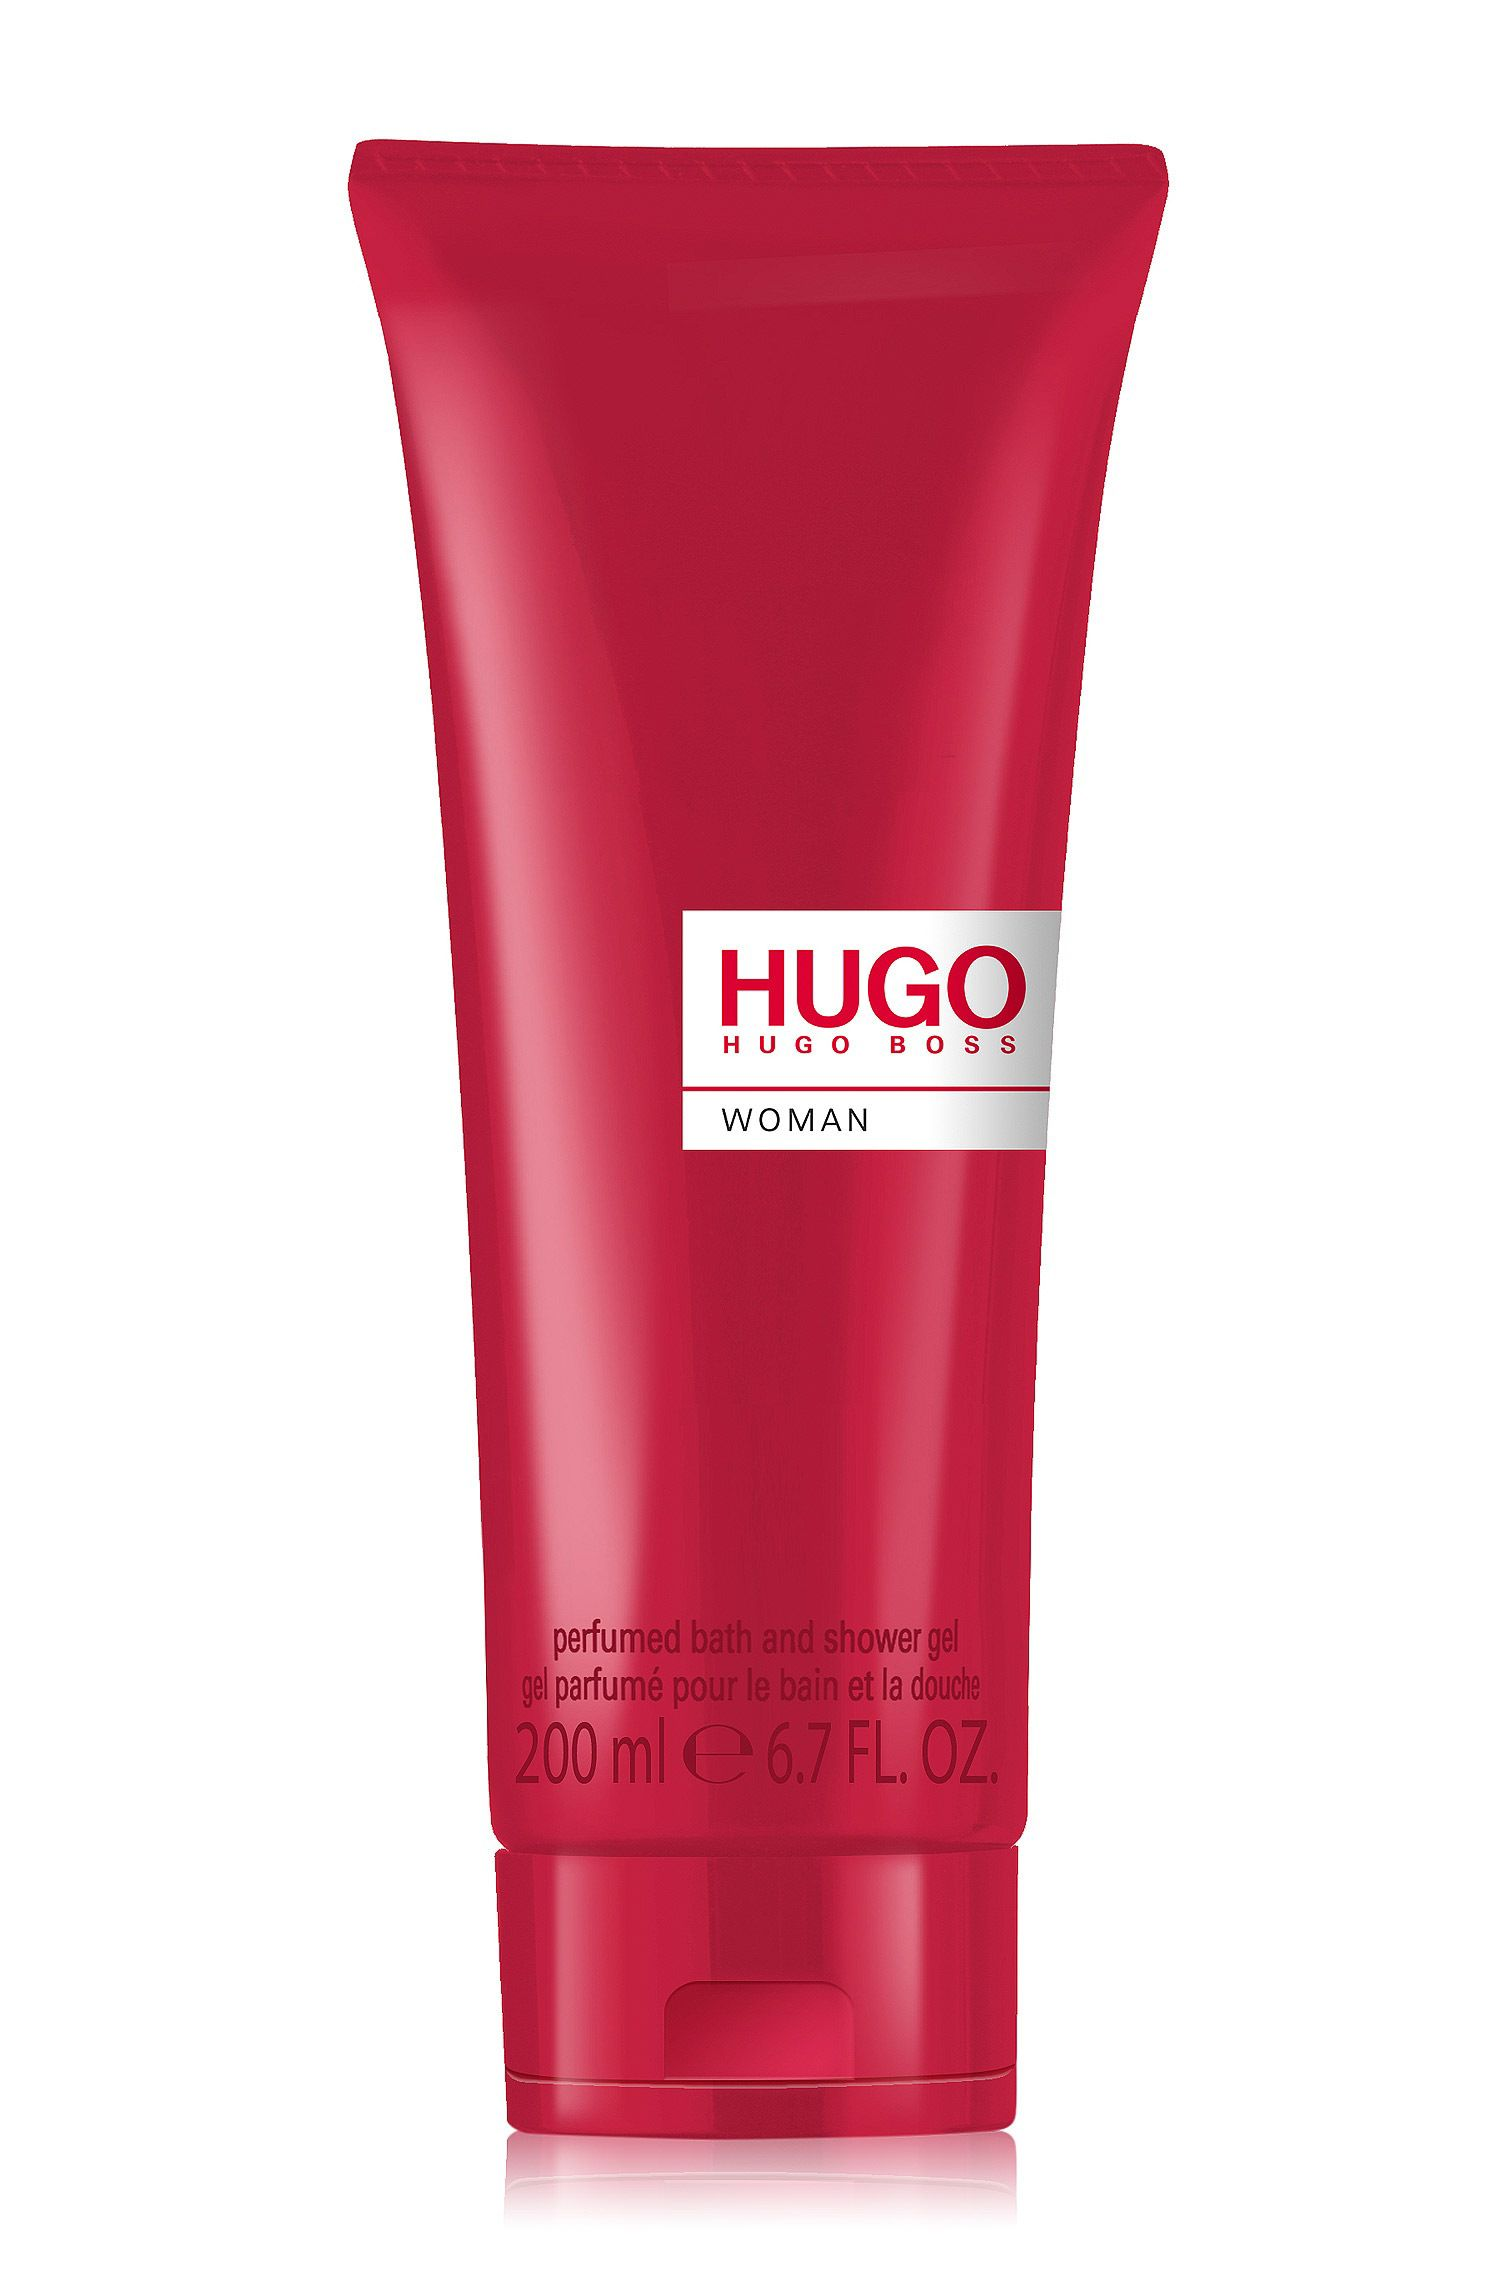 Gel douche HUGO Woman, 200 ml, Assorted-Pre-Pack